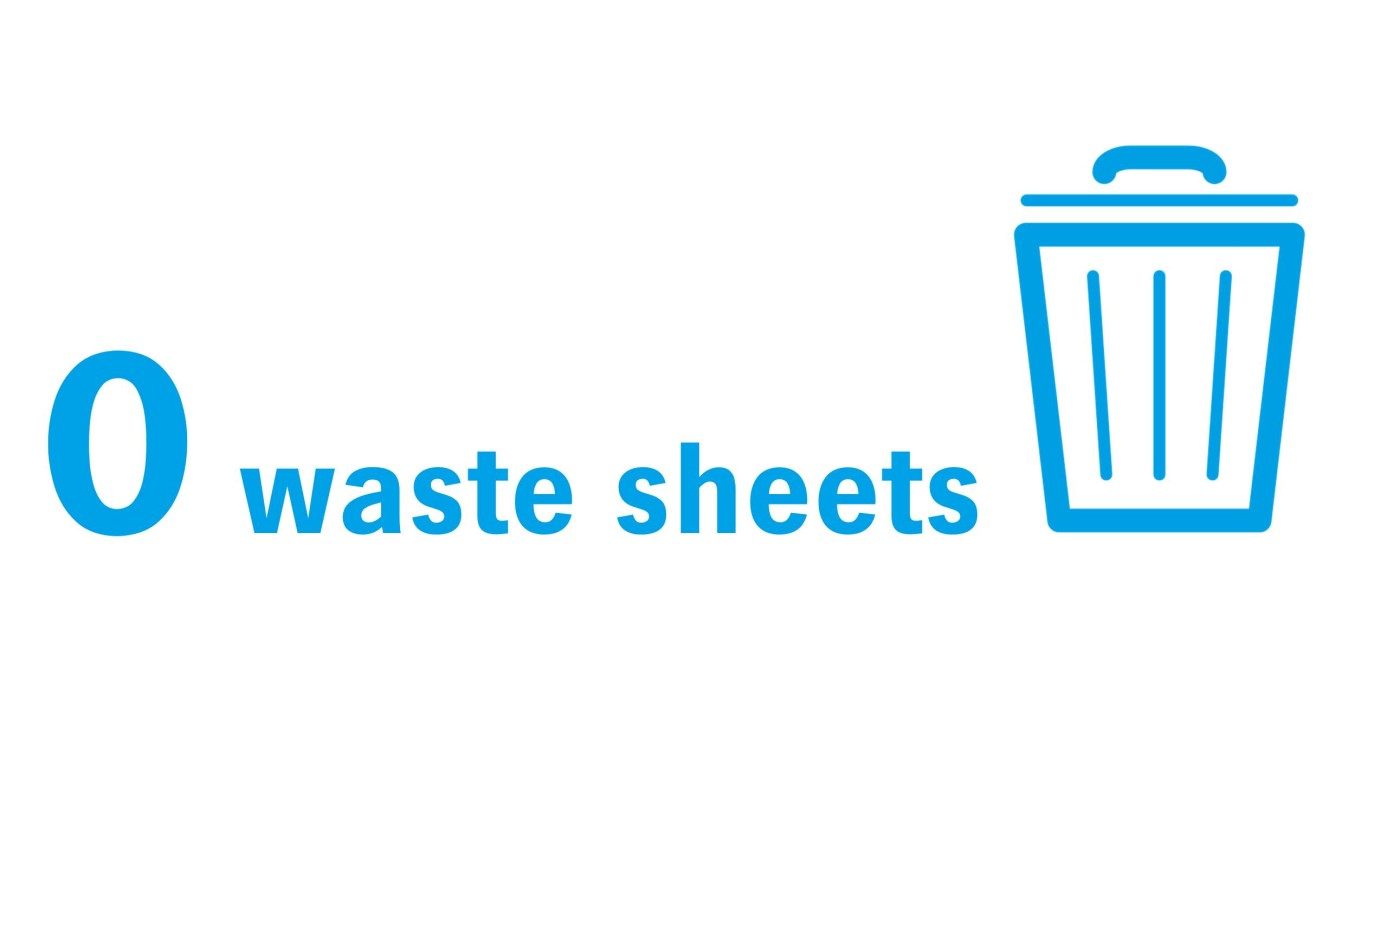 0_waste_sheets